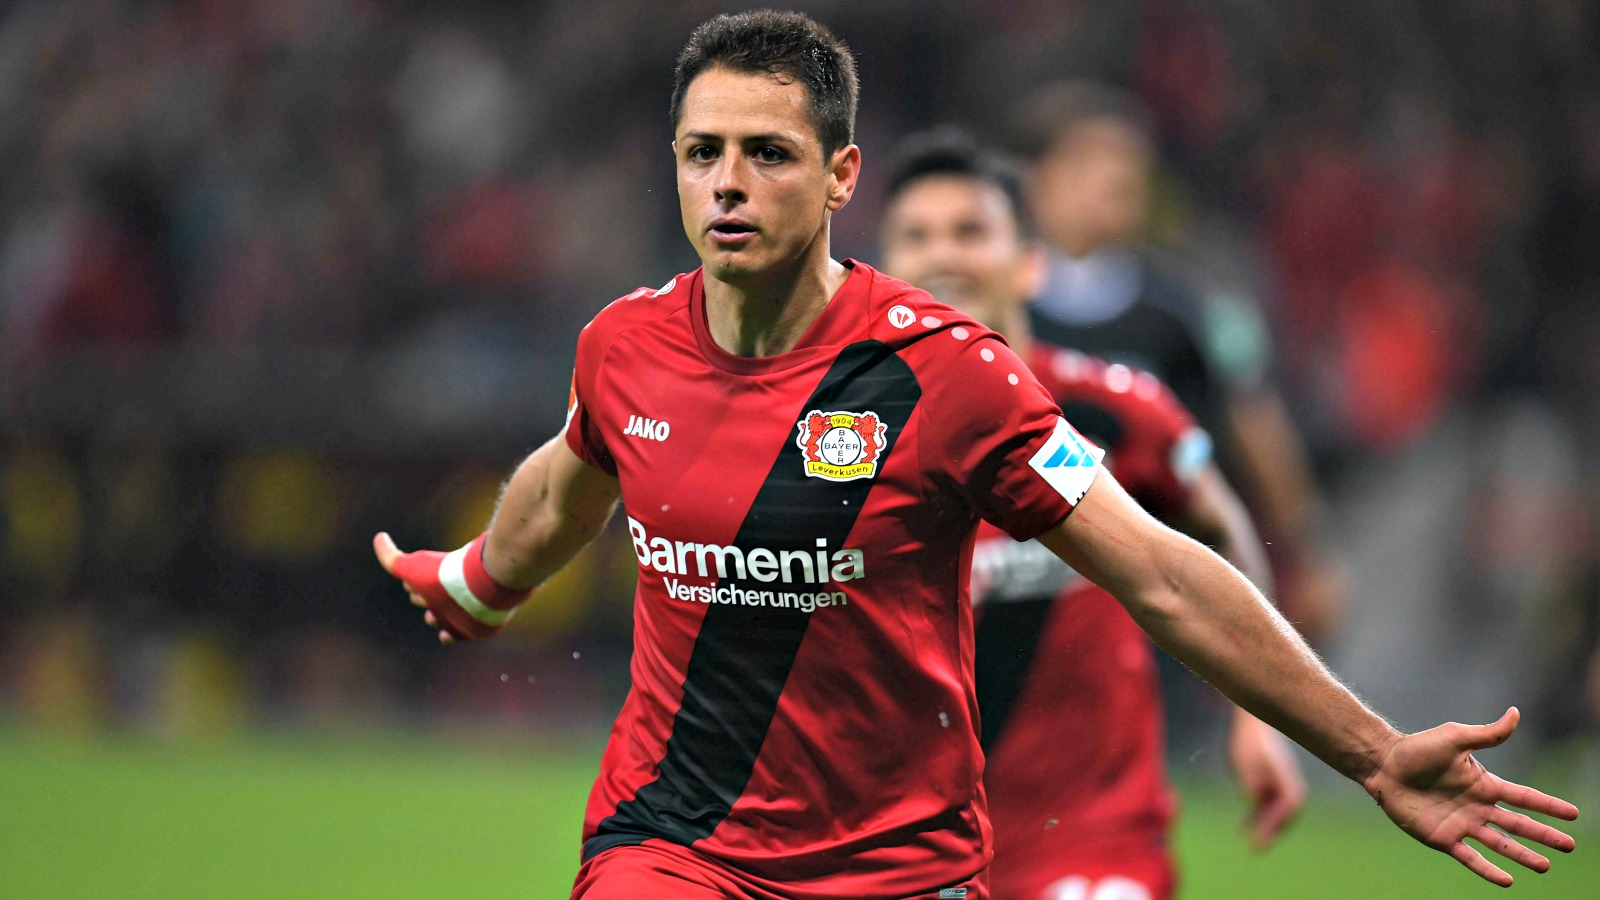 Chicharito scores again to move to the top of the Bundesliga goal scorers list